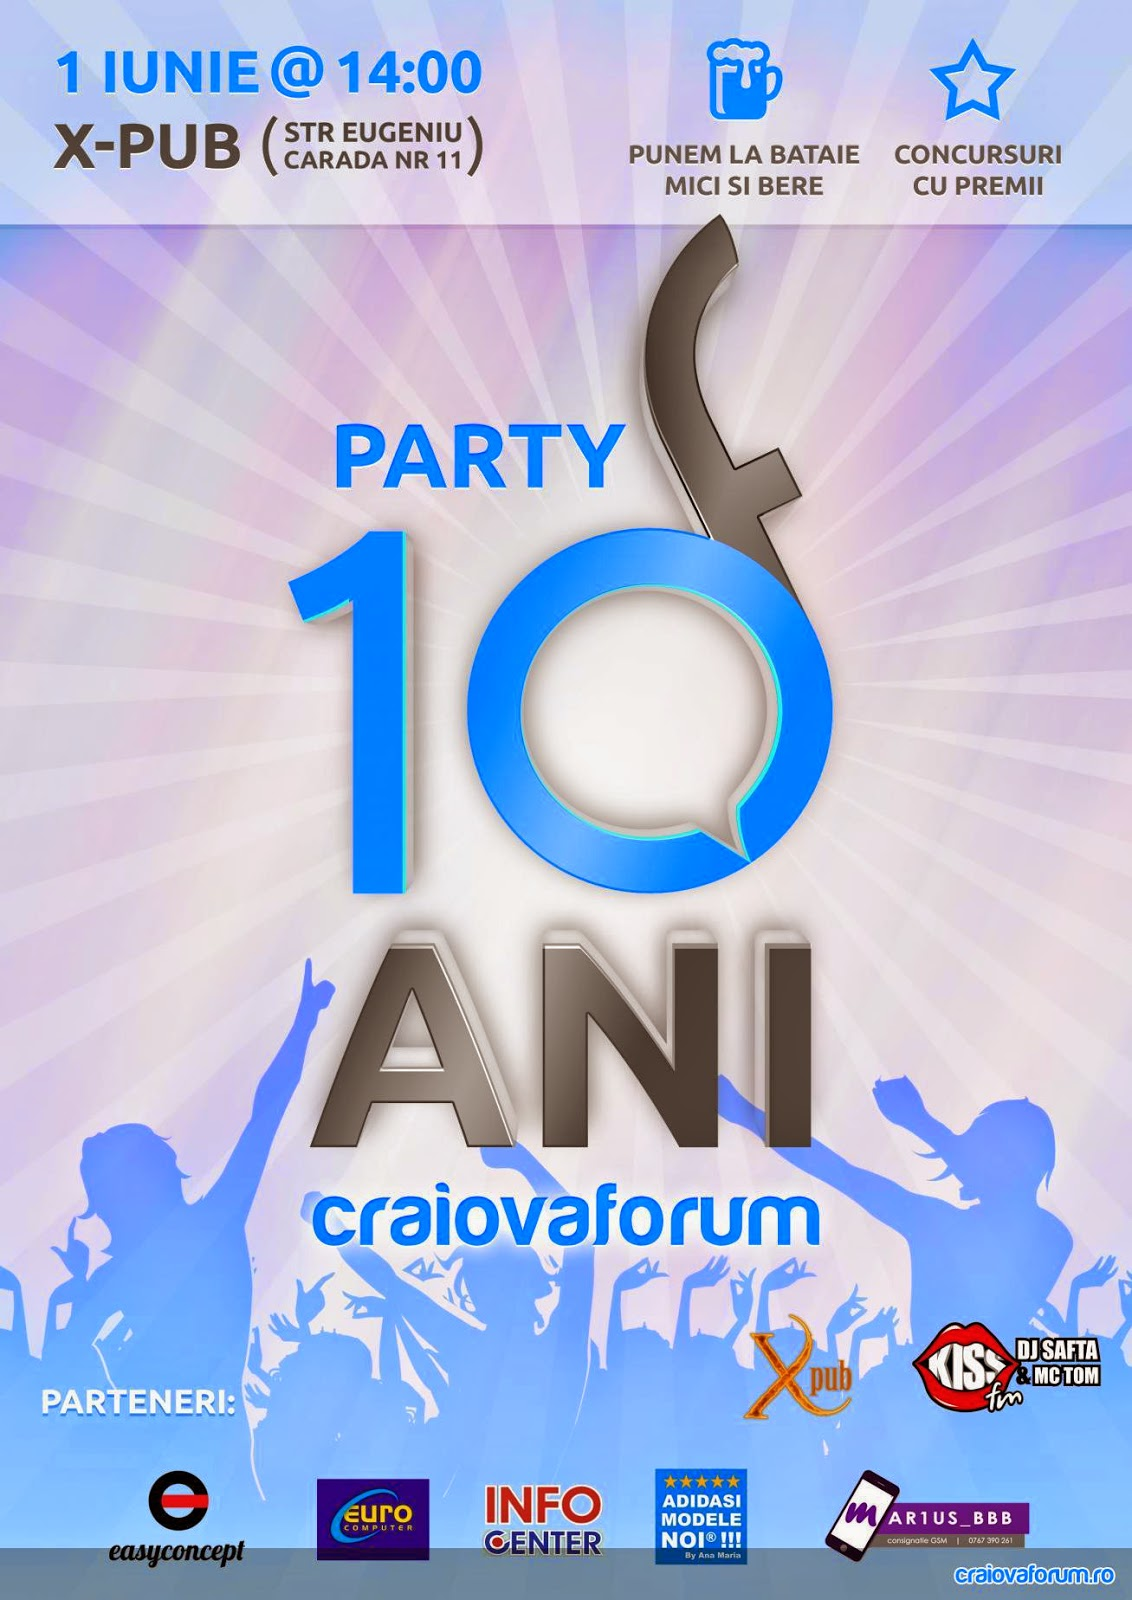 CraiovaForum: 10 ani si party aniversar